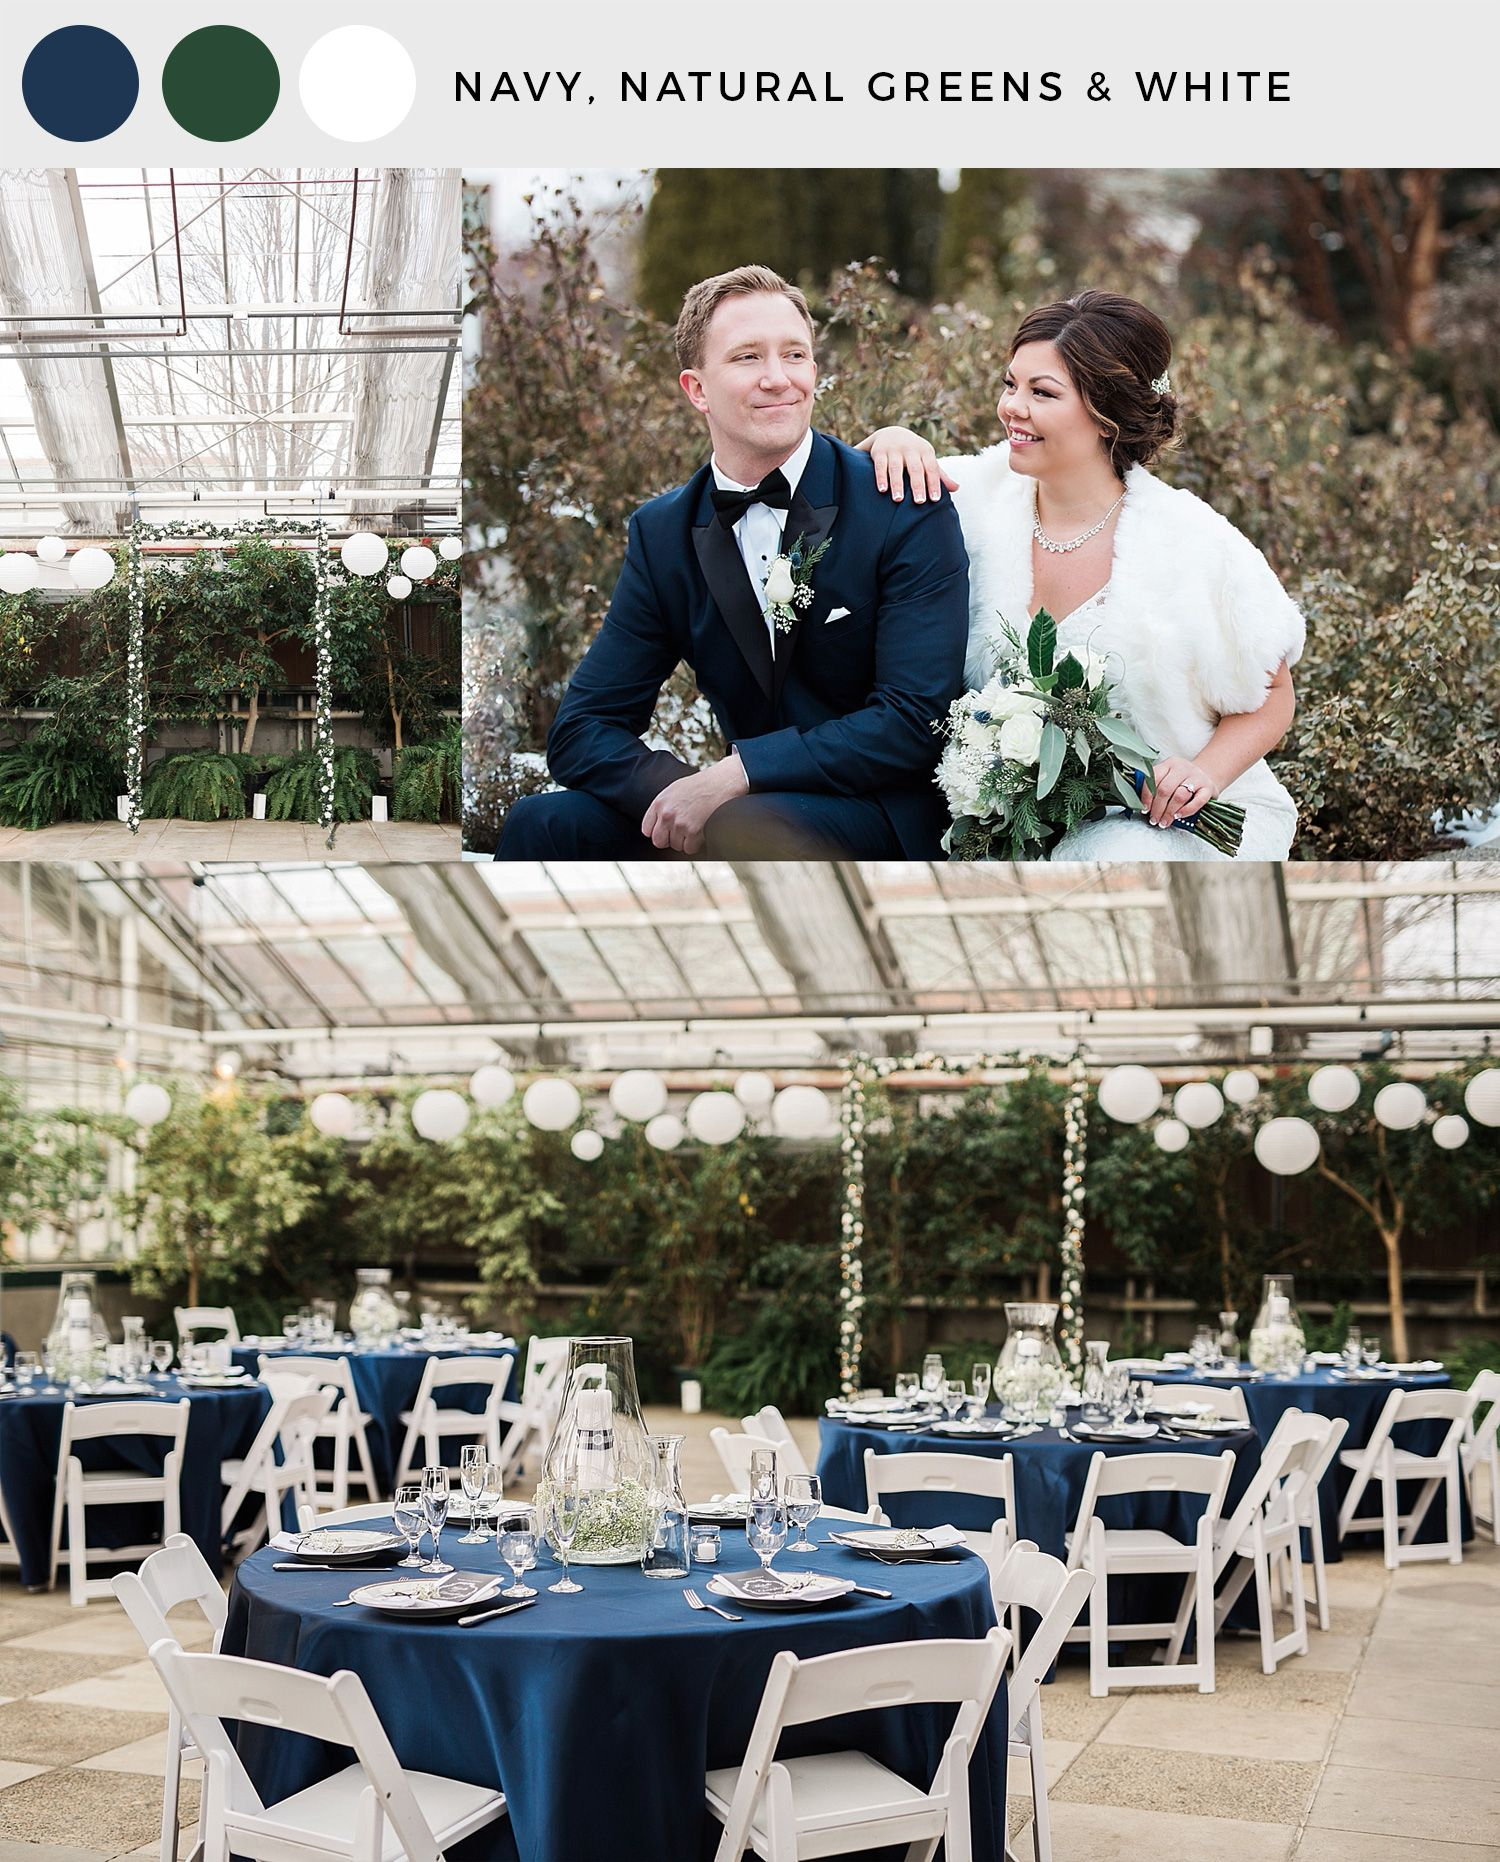 Get The Scoop On Ten Michigan Winter Wedding Venues As You Style Your Own Wedding In The Sn Michigan Wedding Venues Winter Wedding Venues Detroit Wedding Venue